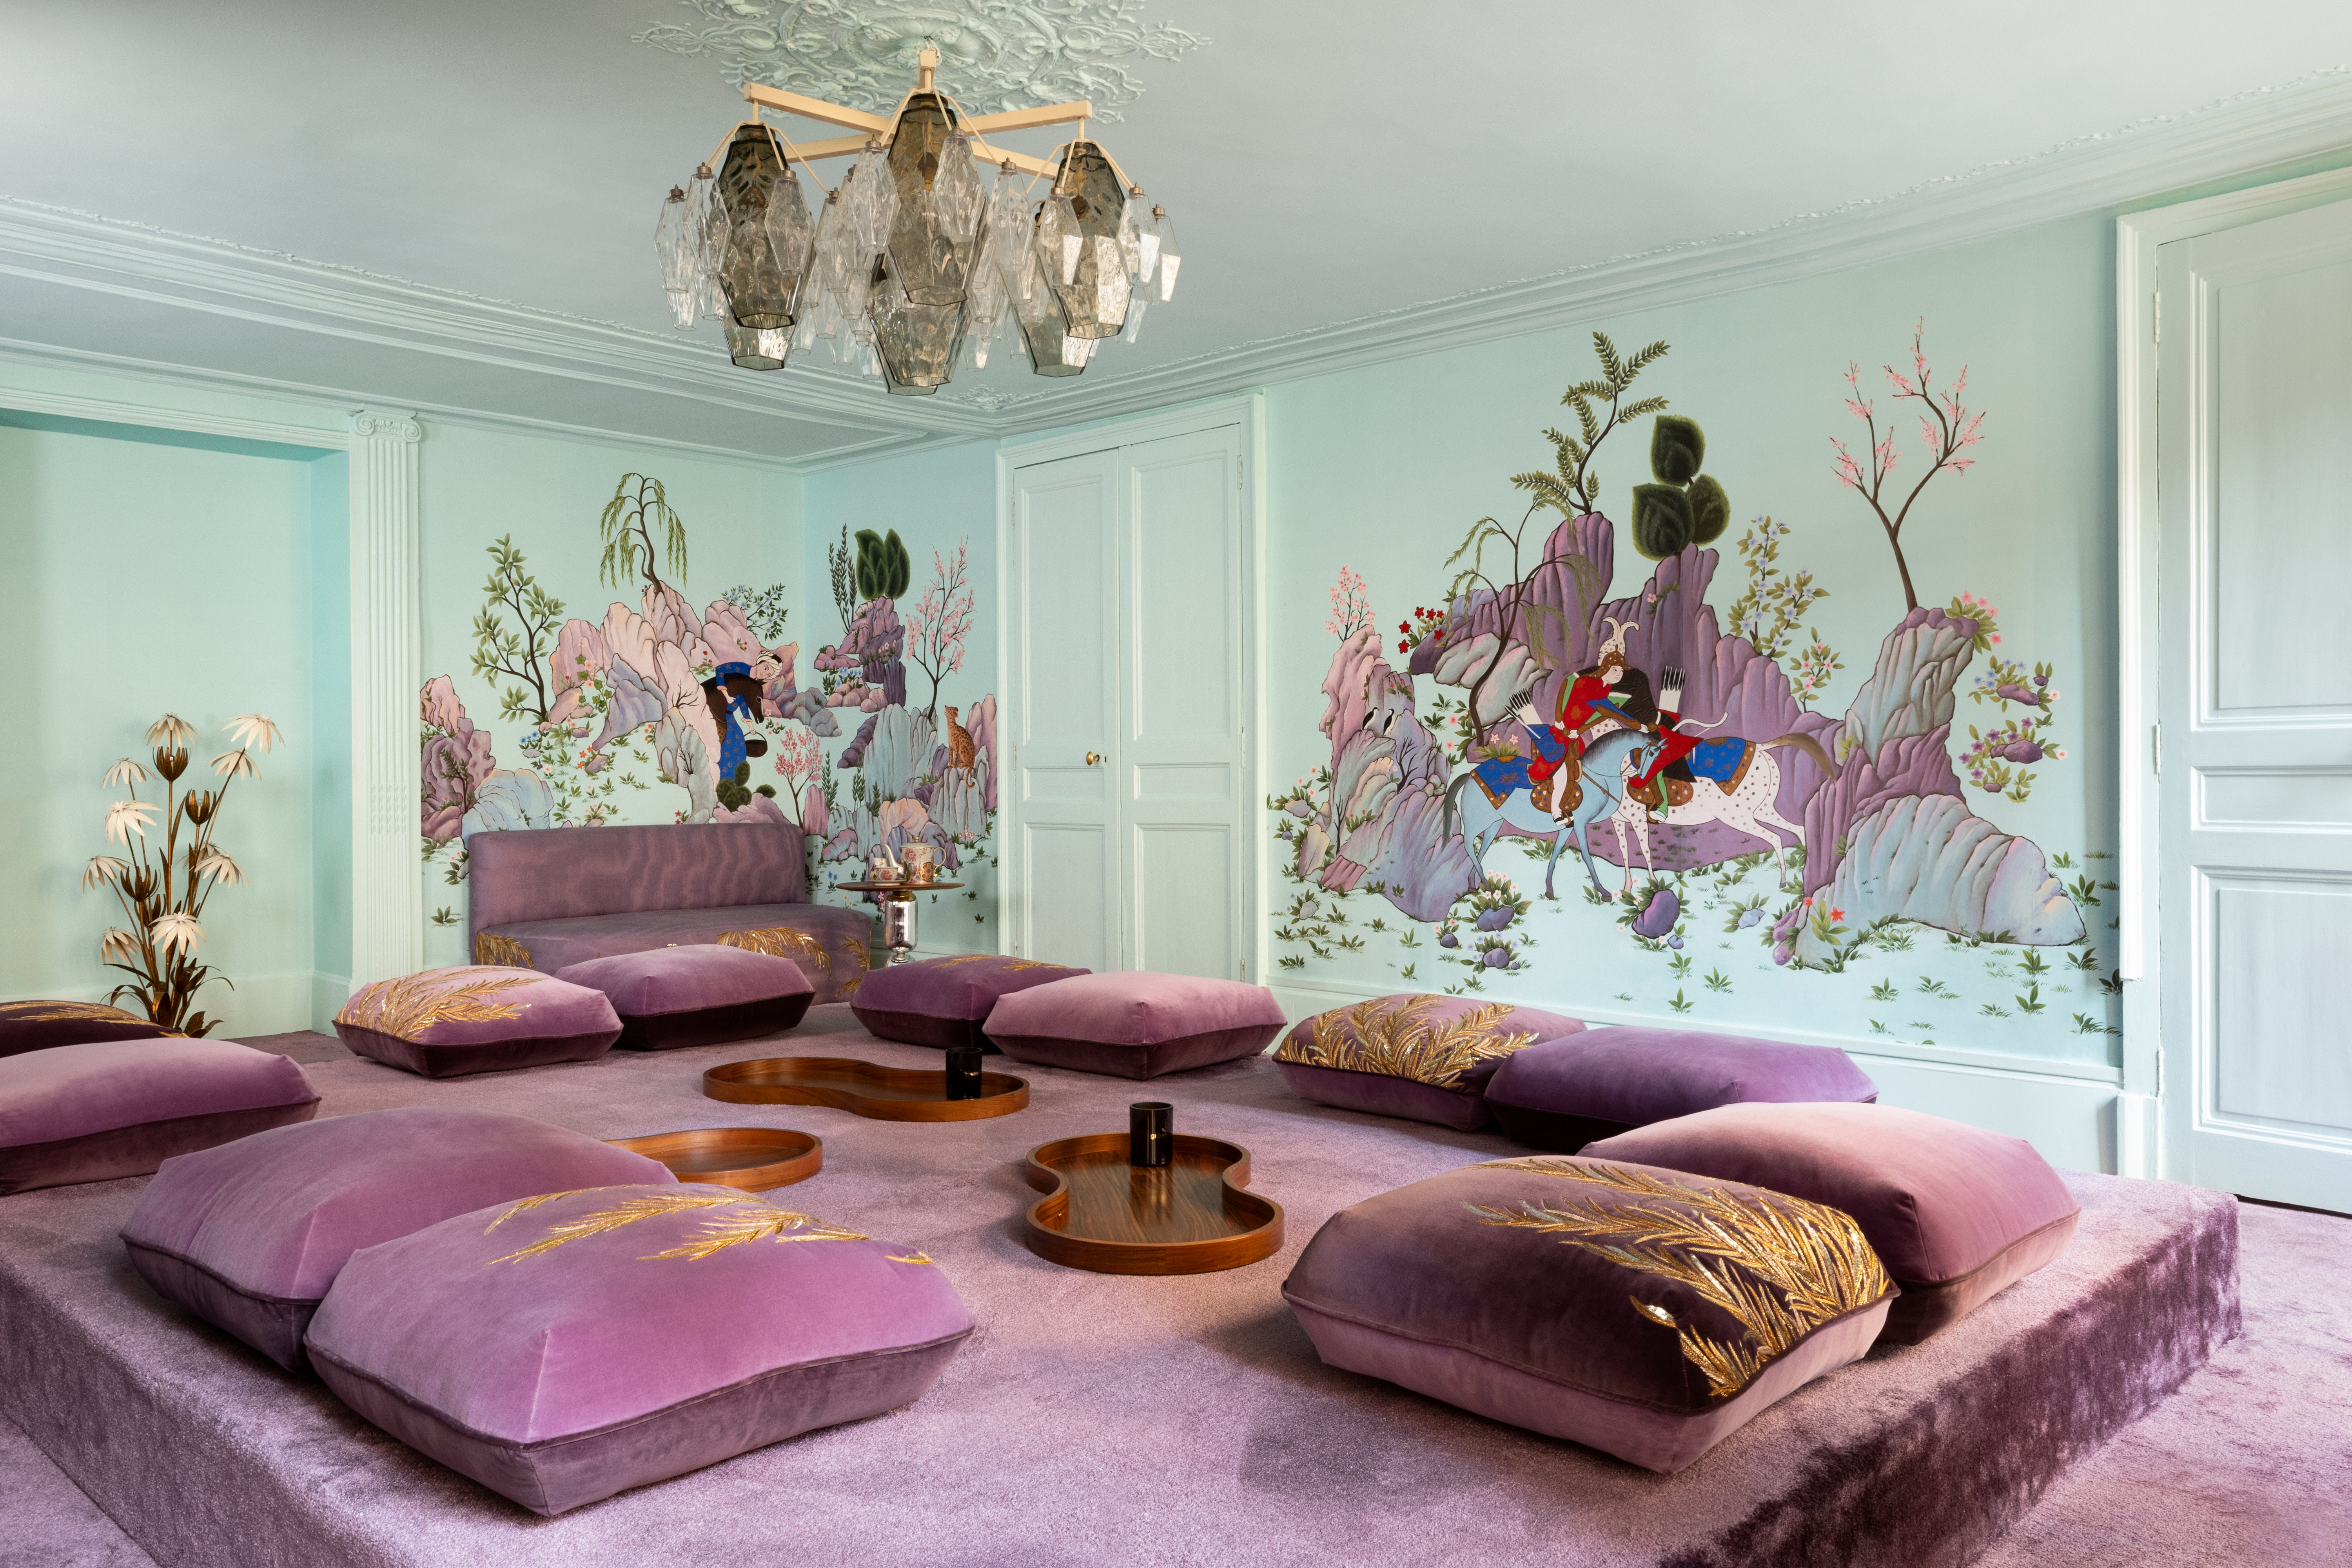 purple rug and light blue walls with graphic wallpaper